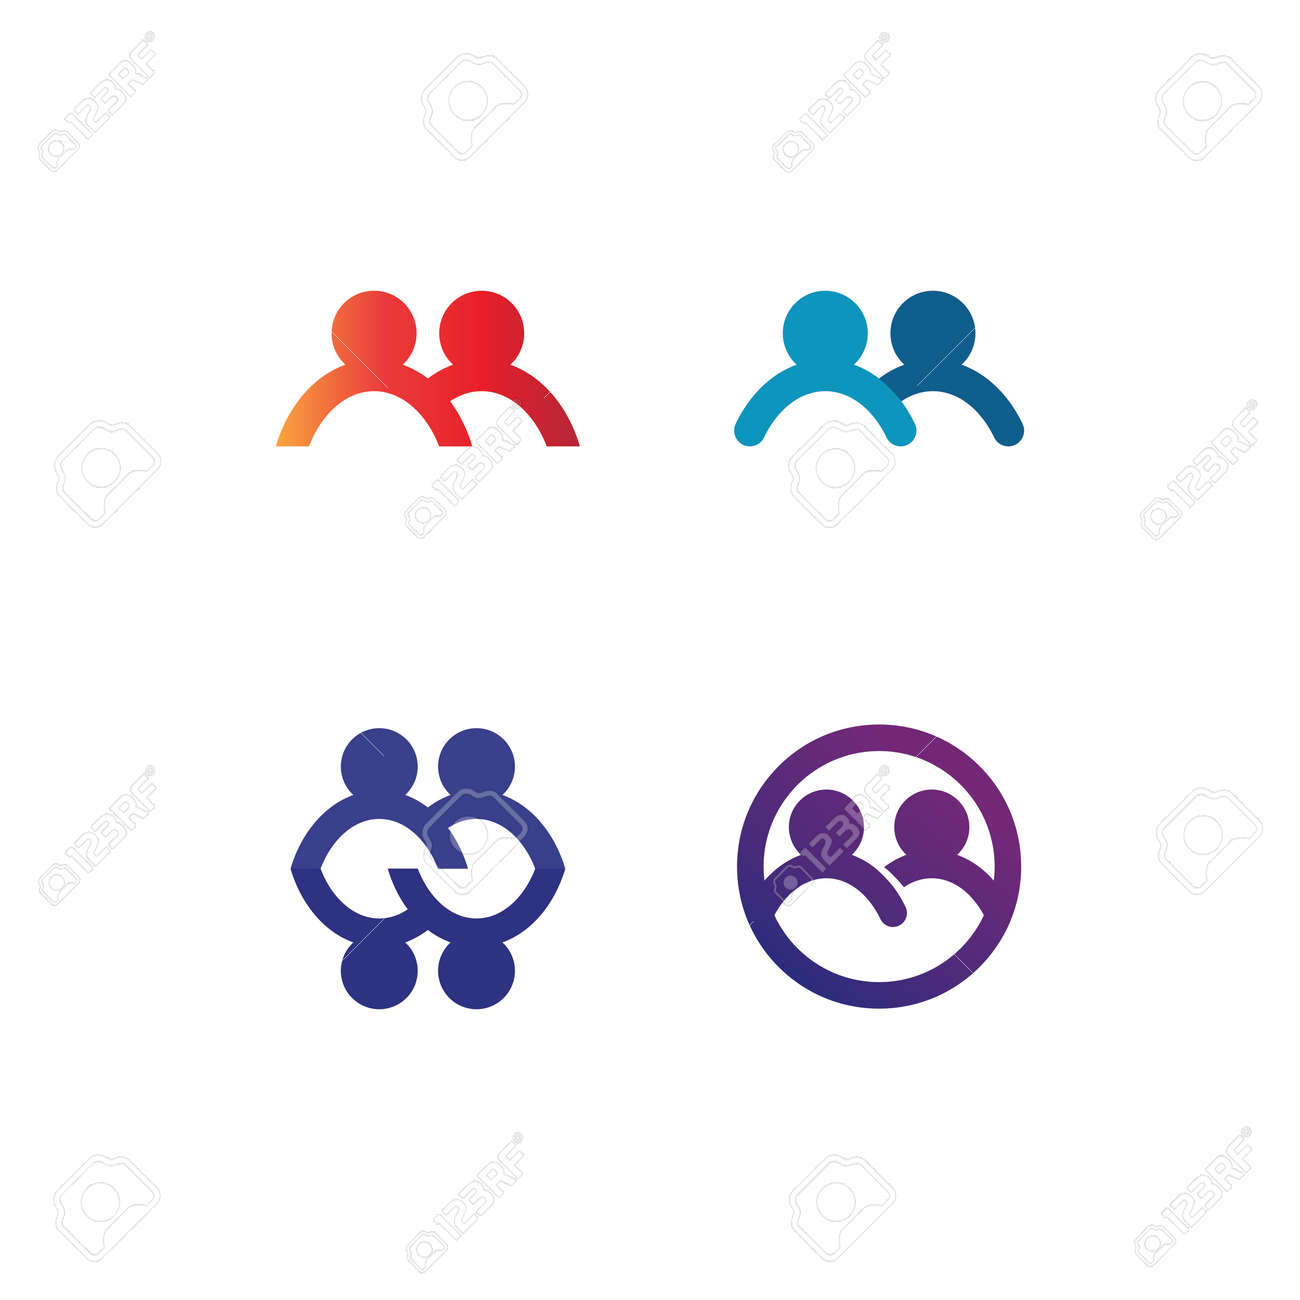 People logo, Team, Succes people work, Group and Community, Group Company and Business logo vector and design Care, Family icon Succes logo - 169526591